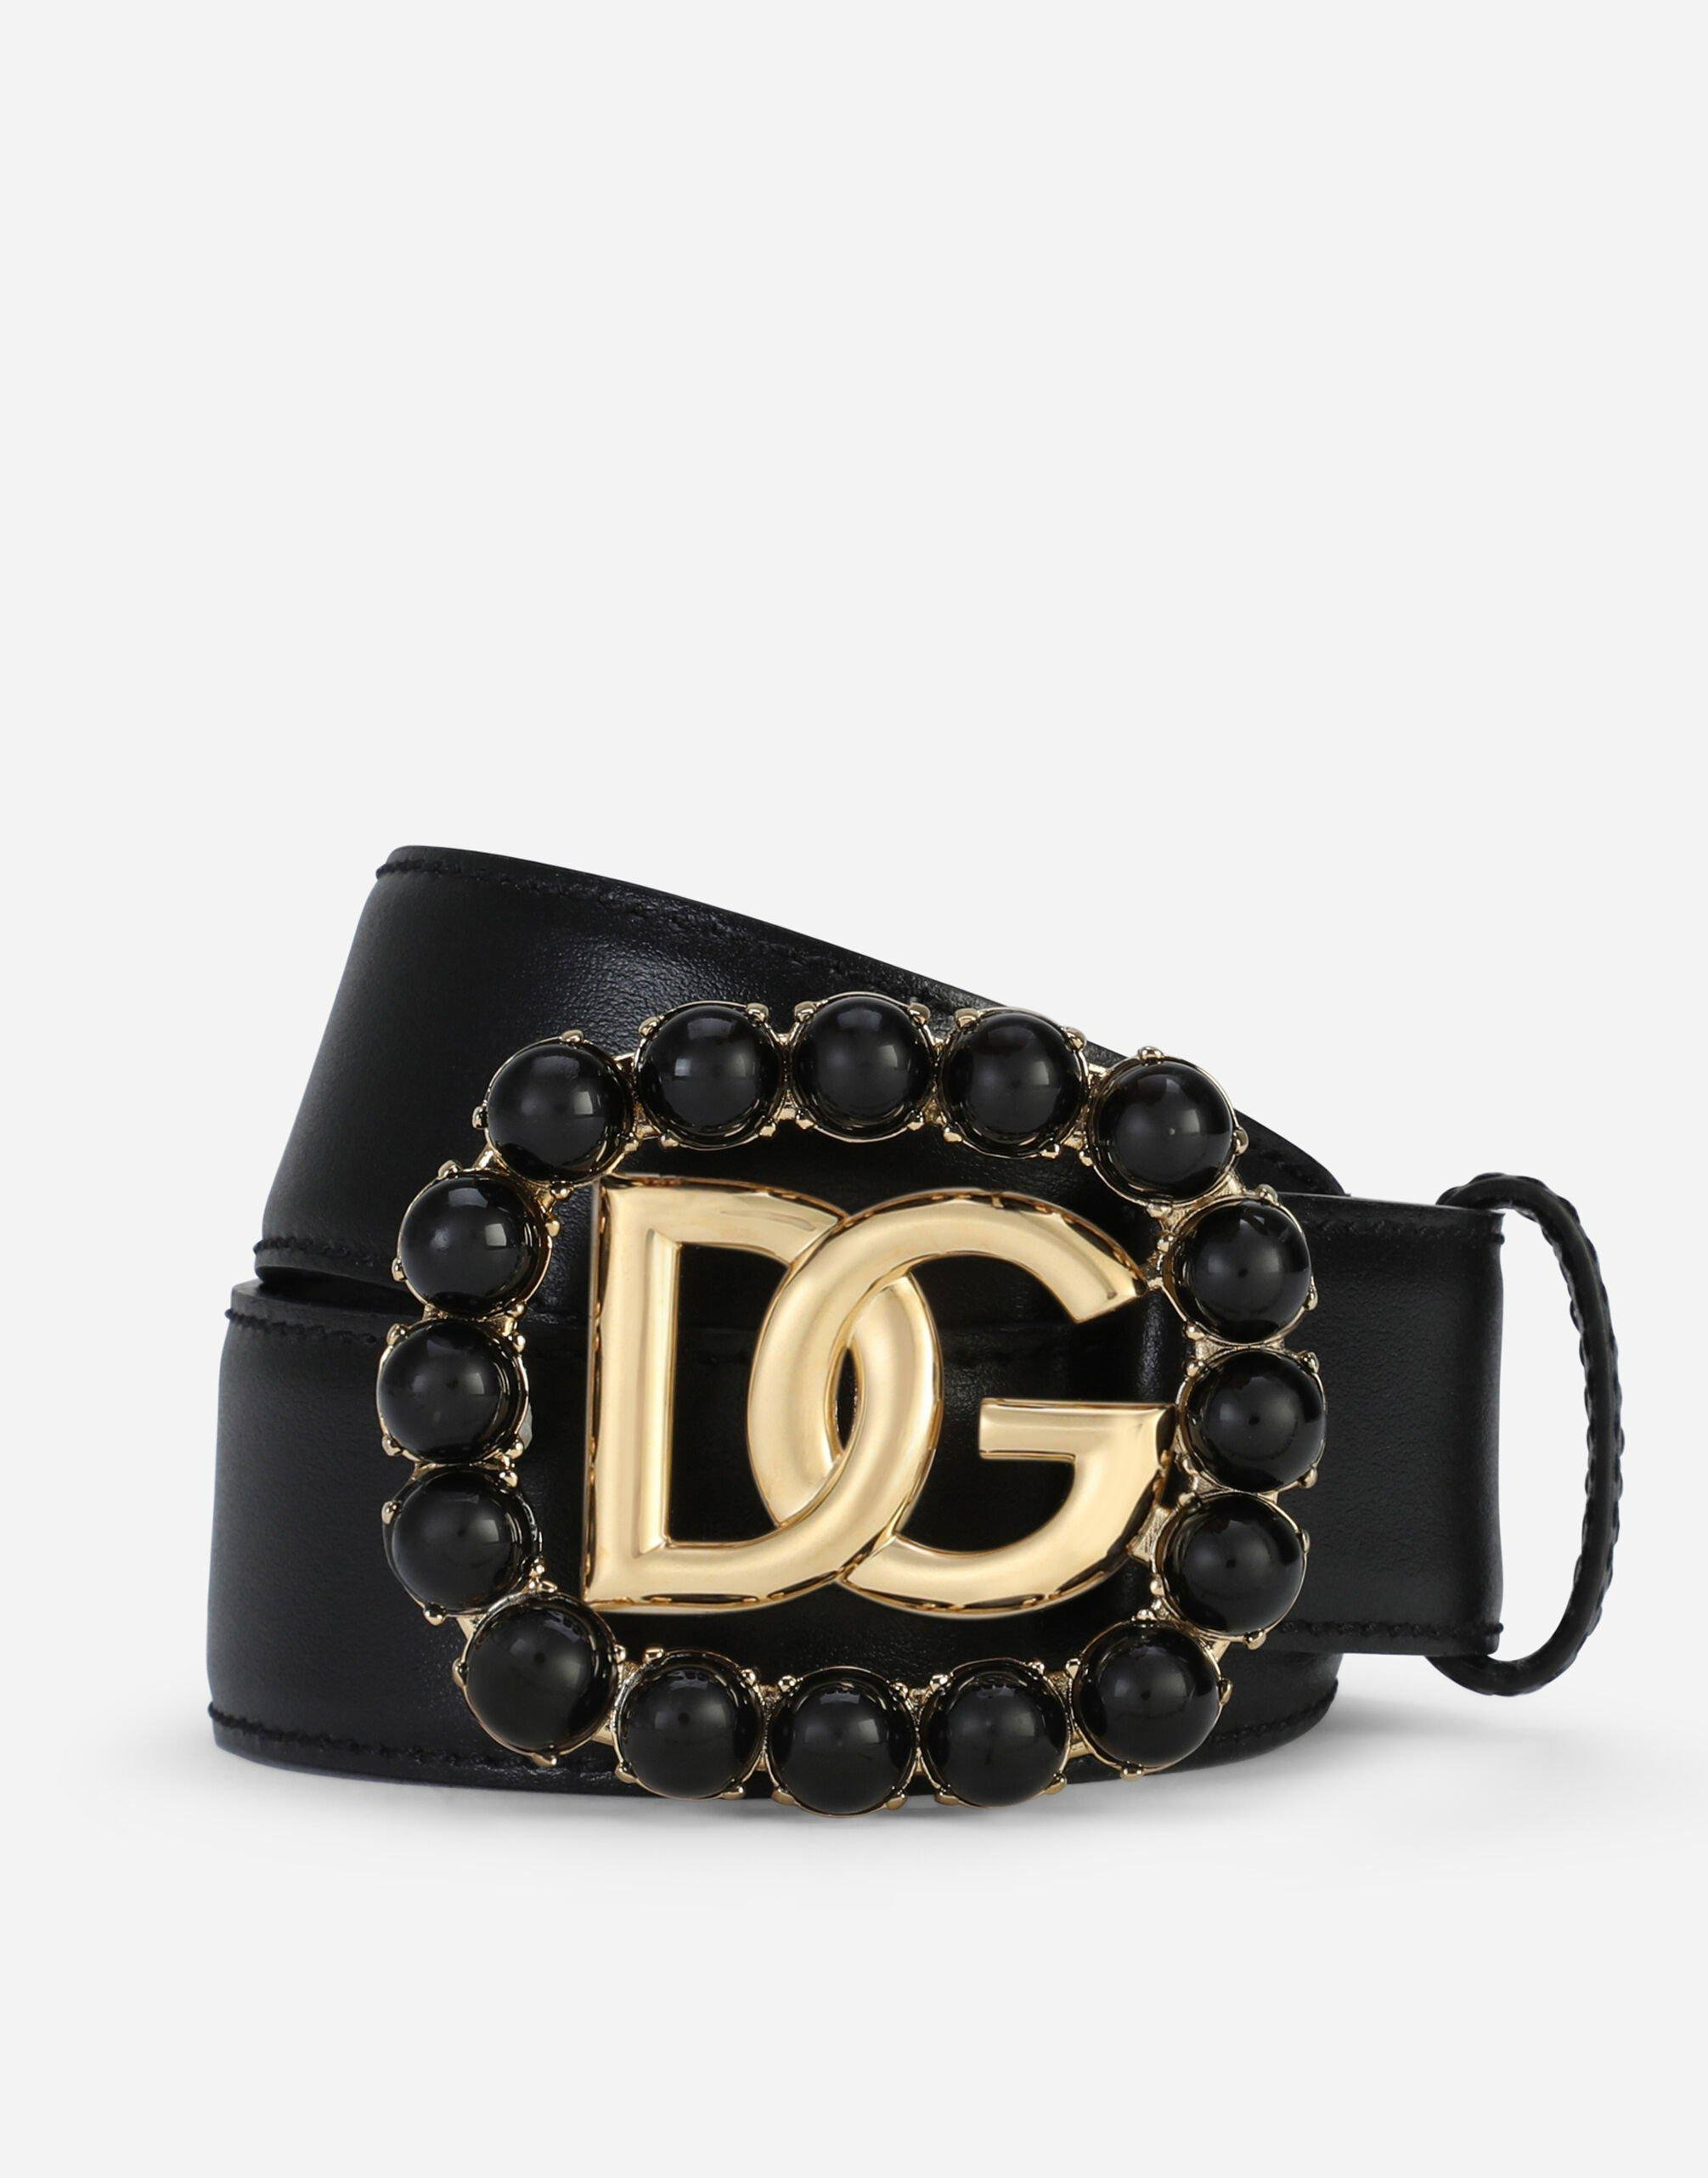 Calfskin belt with DG logo with black pearls